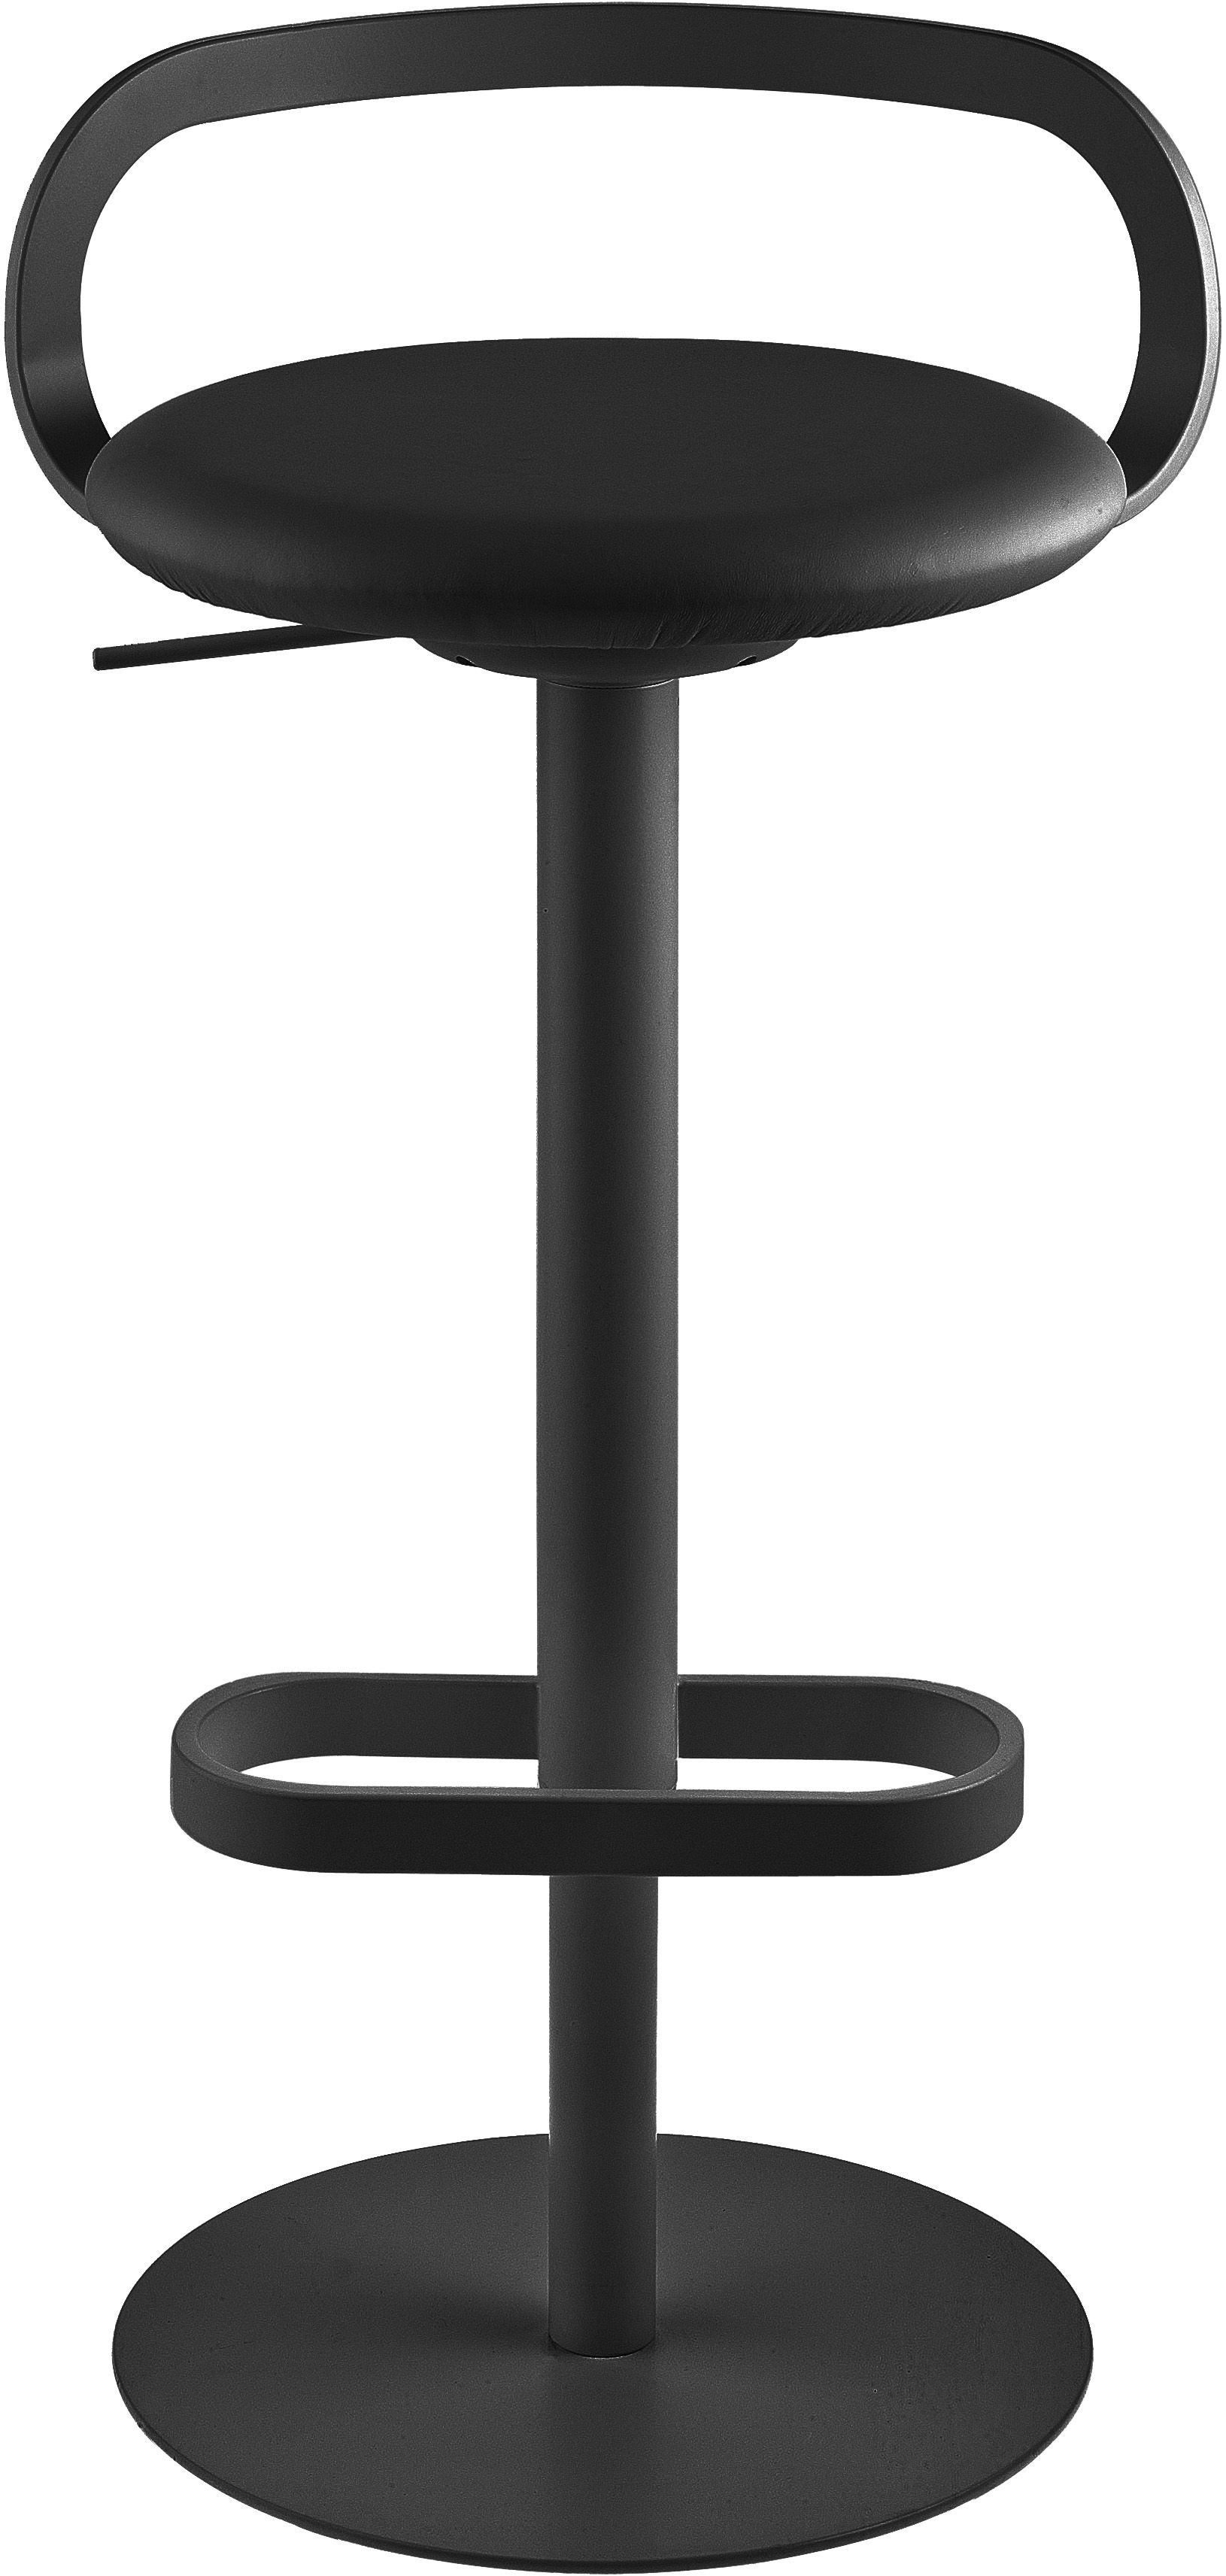 Tabourets De Bar New Cab Tabouret De Bar Assise Tournante Les Tournesols